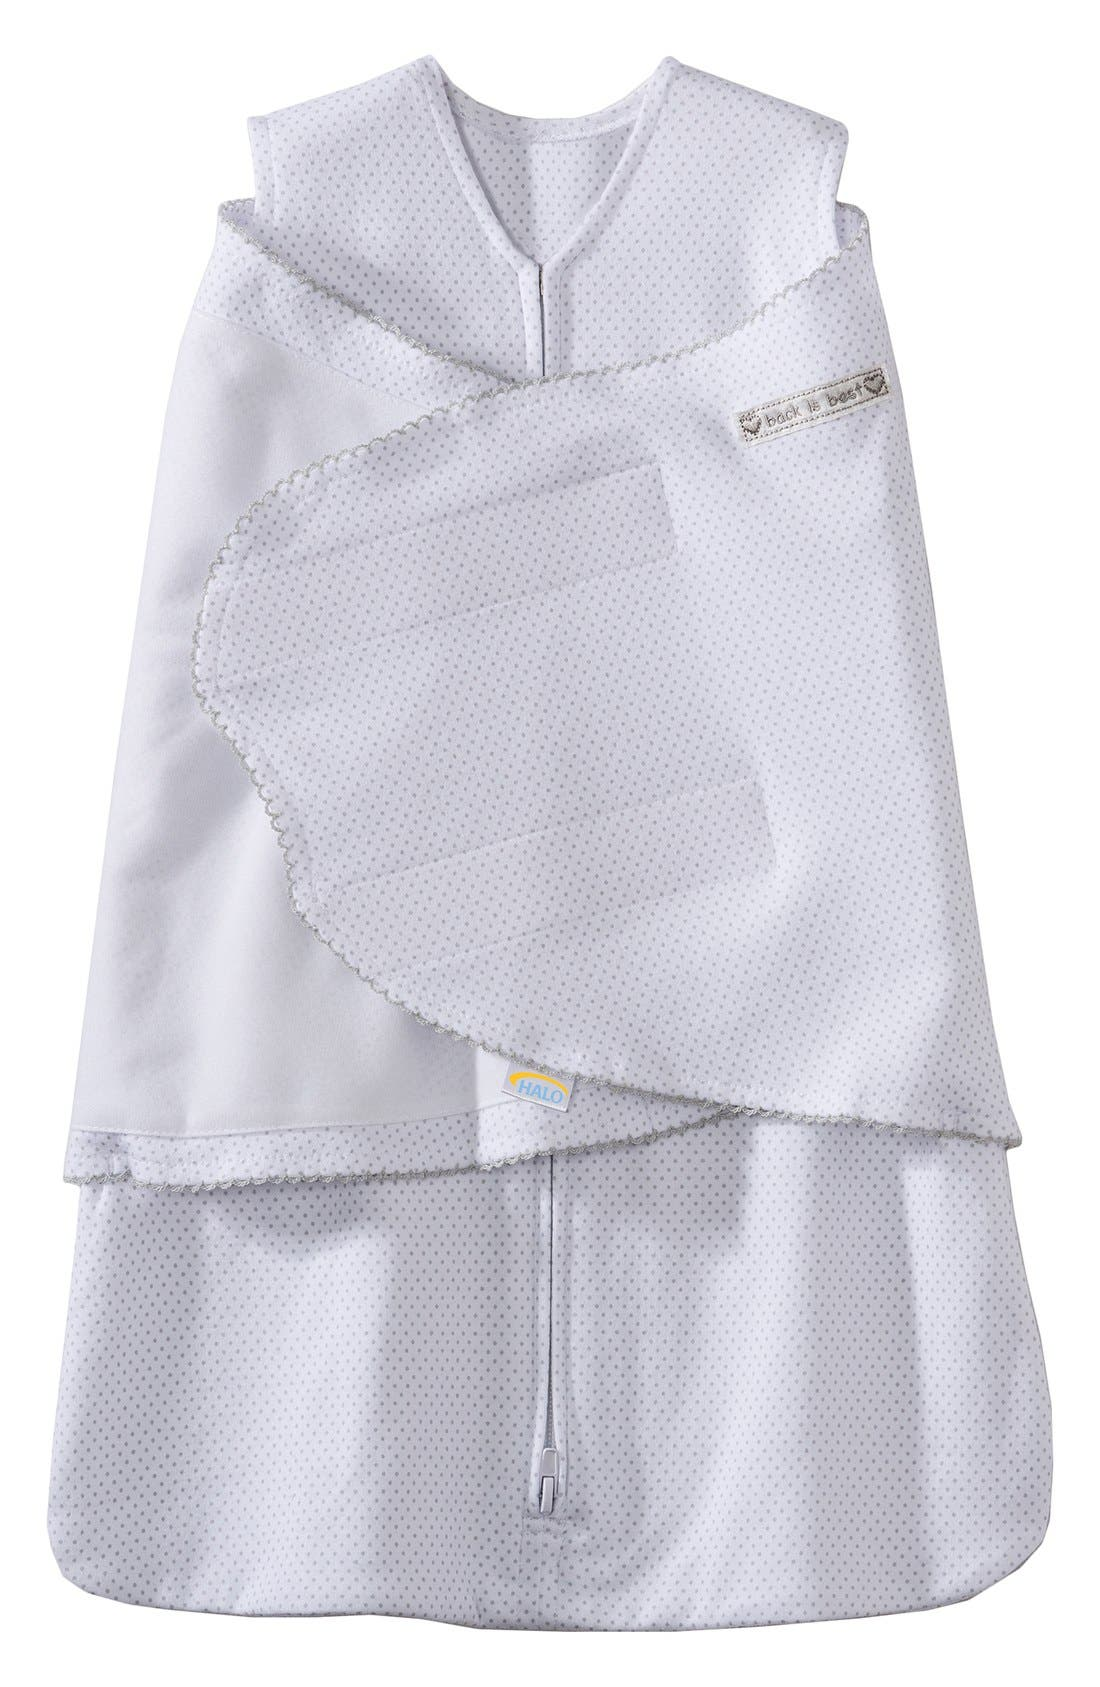 Alternate Image 2  - Halo Innovations Wearable Swaddle Blanket (Baby)